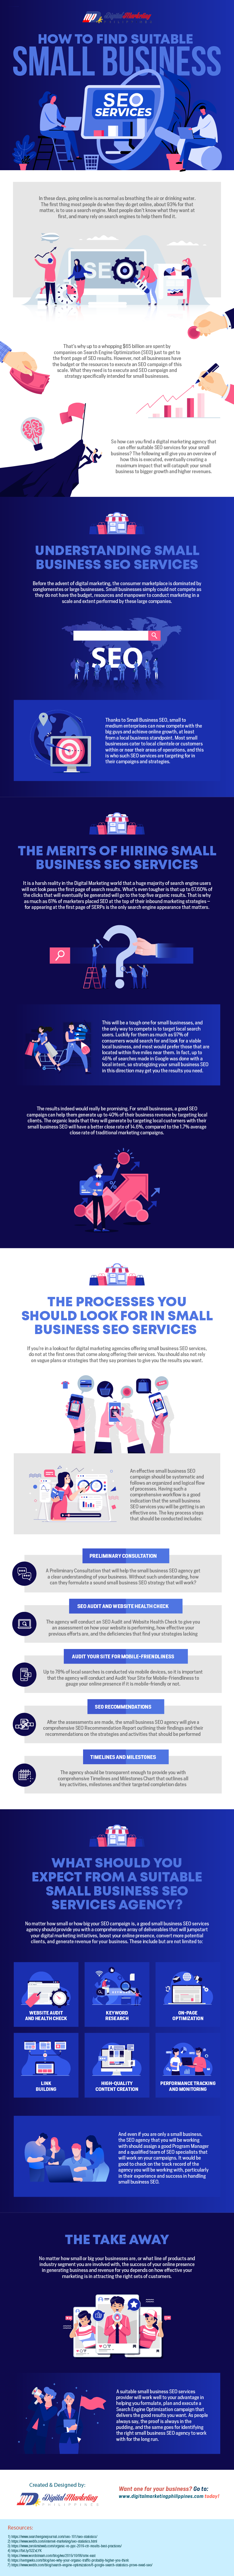 Small Business SEO Infographic